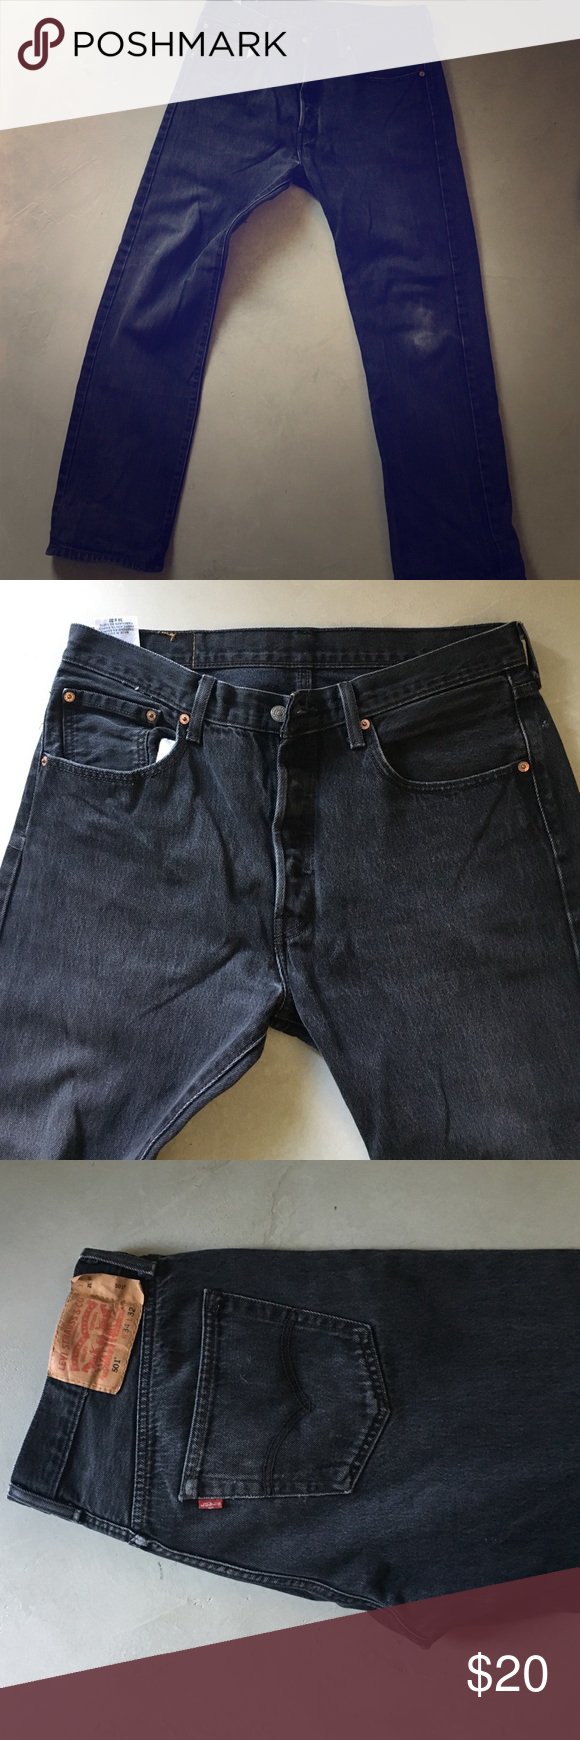 501's Levi's Faded black 501's Levi's Jeans Straight